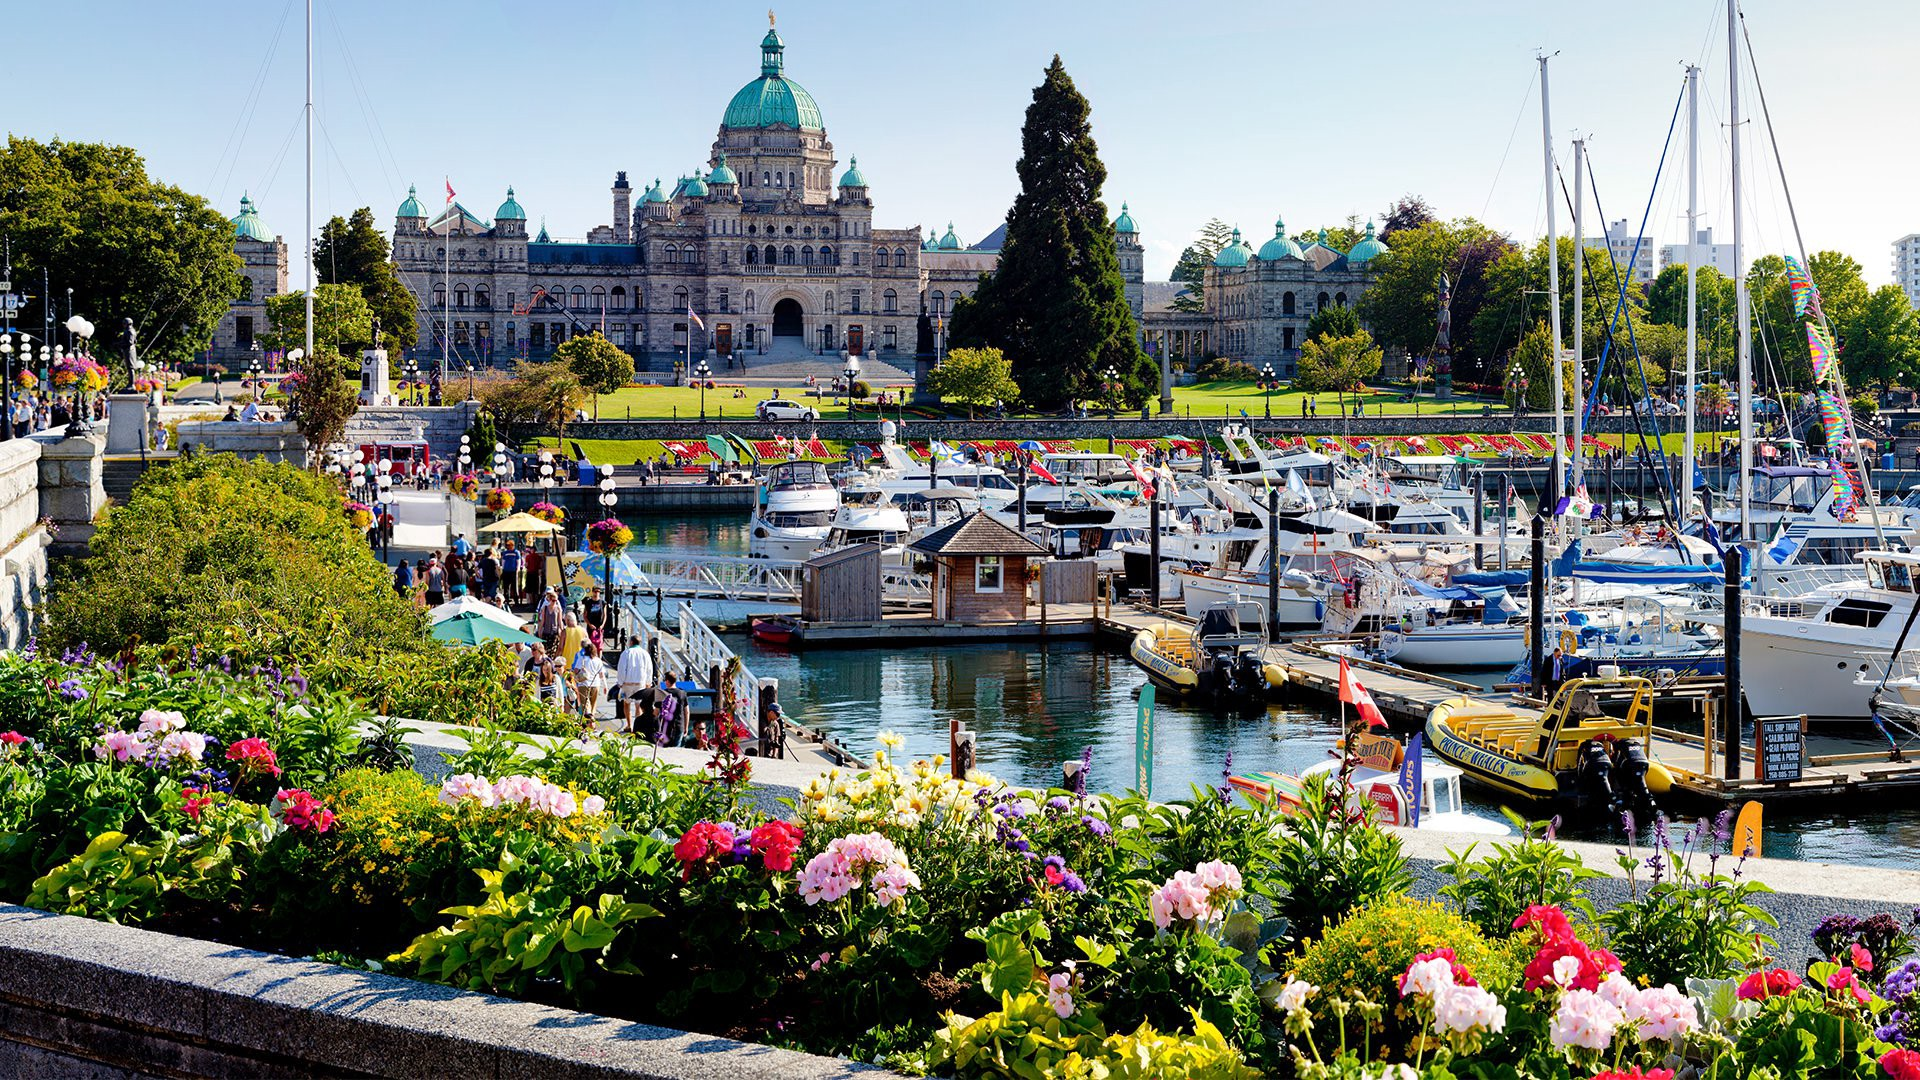 Victoria, British Columbia: 2002 - Duane Windsor